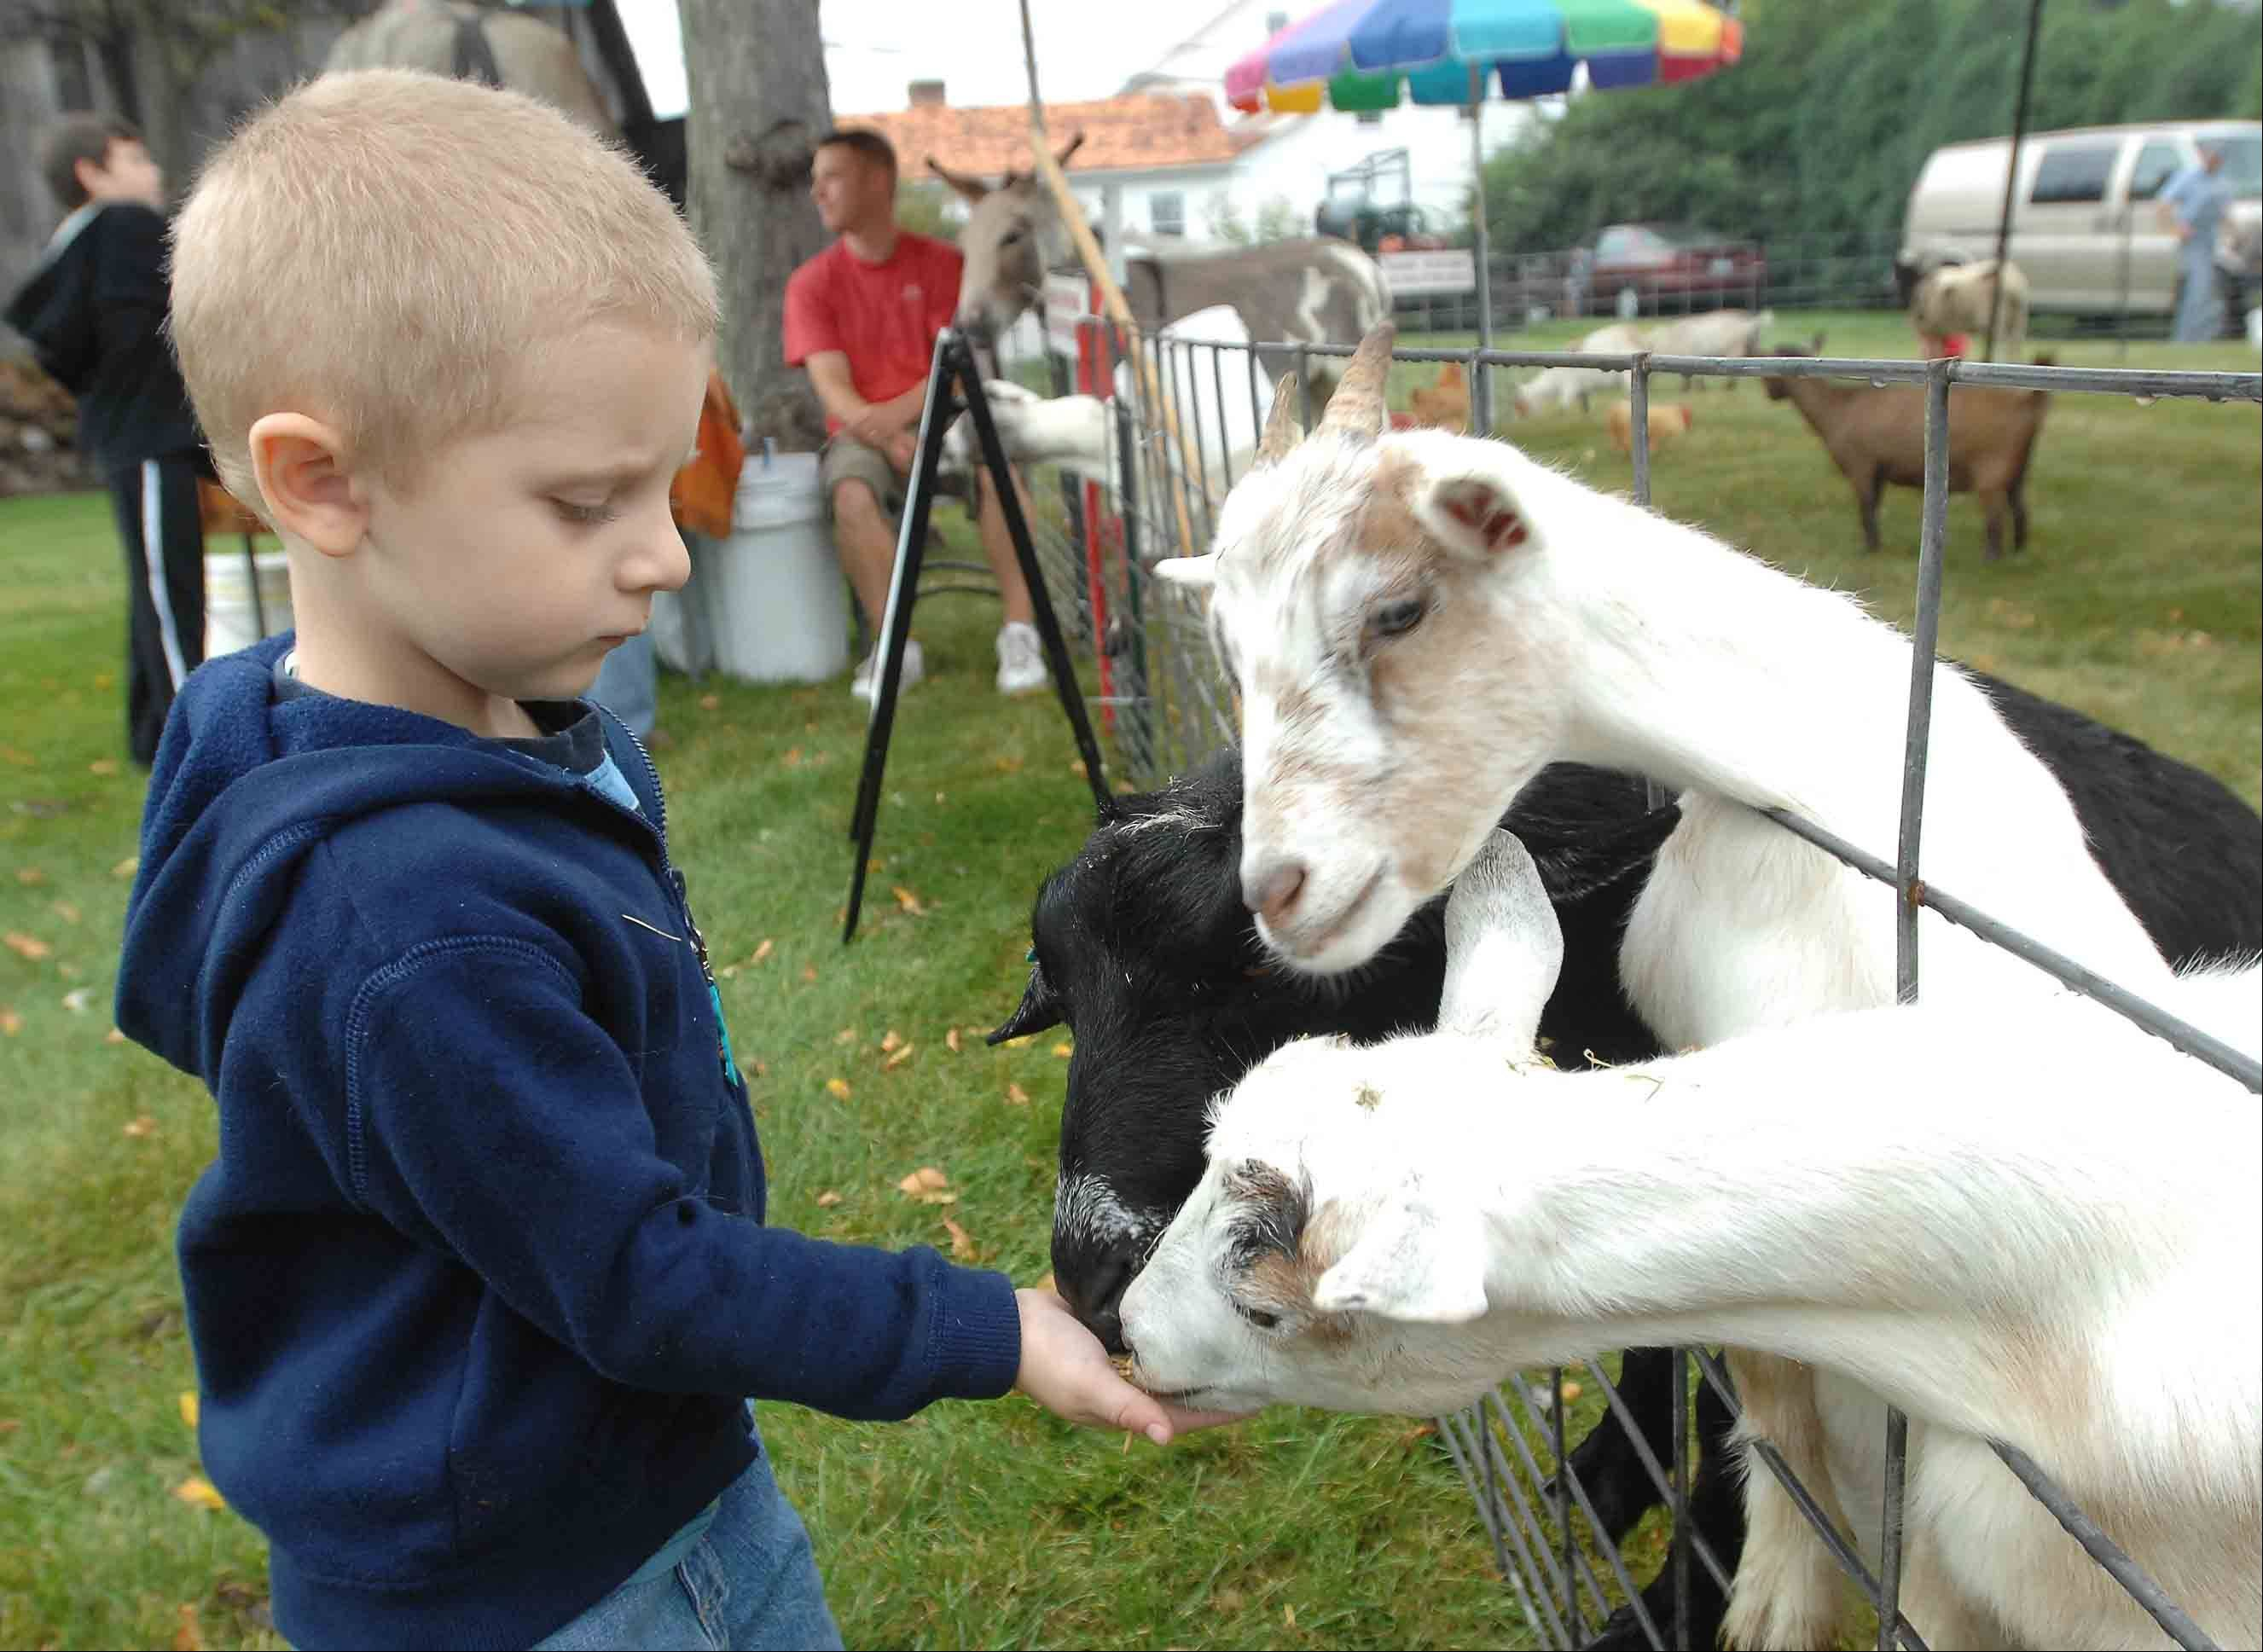 Children can make some new friends when Miller's Petting Zoo visits the Museums at Lisle Station Park for Depot Days.